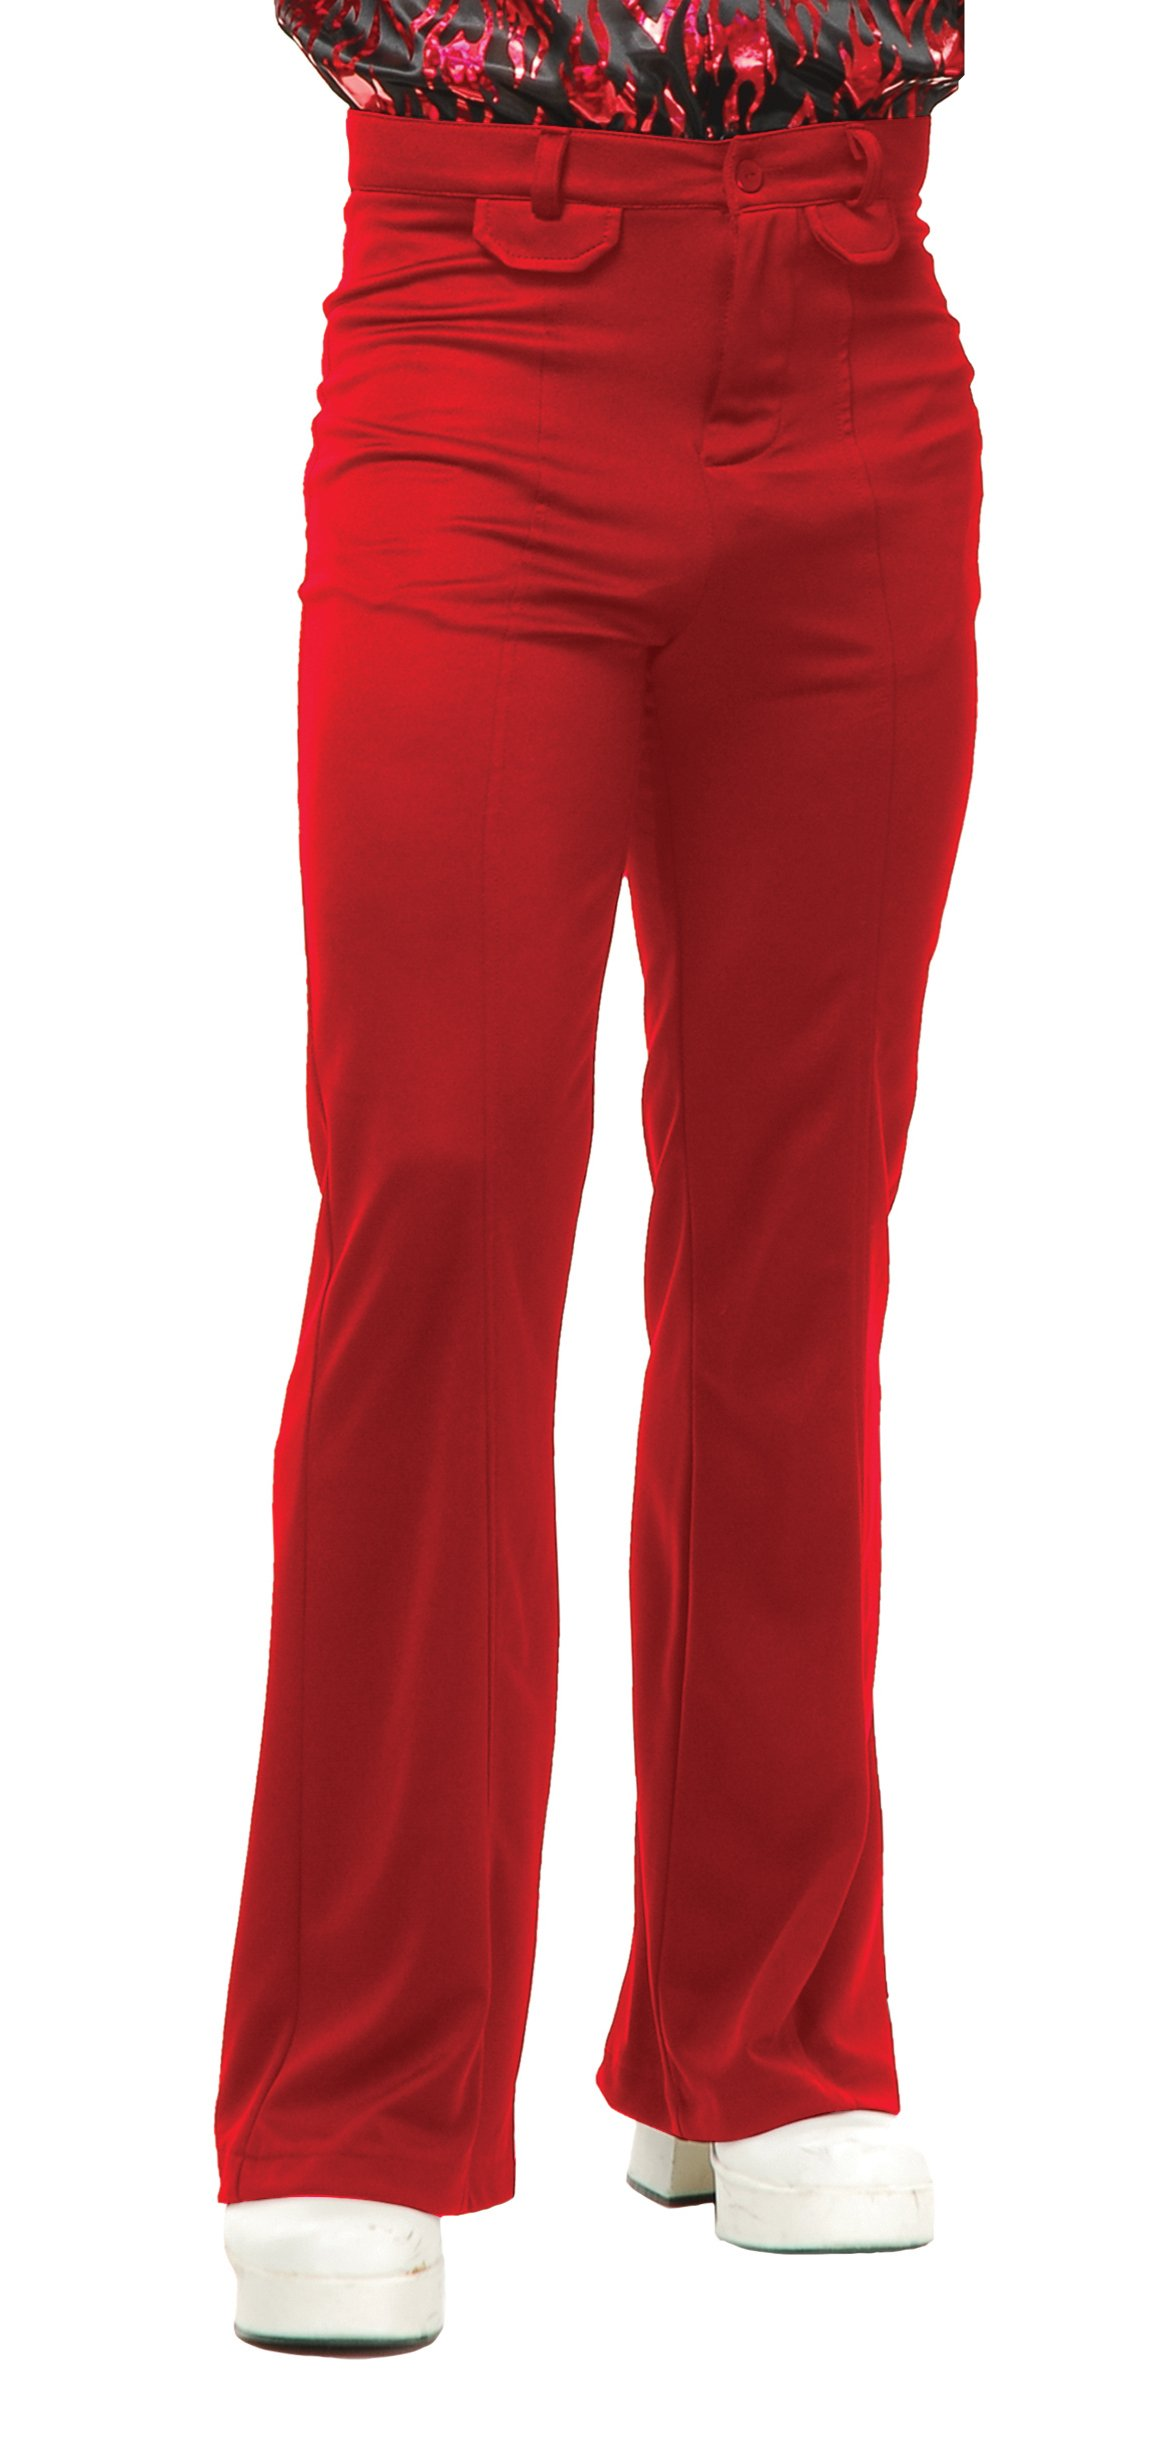 Charades Men's Disco Pants, Red, 32 by Charades